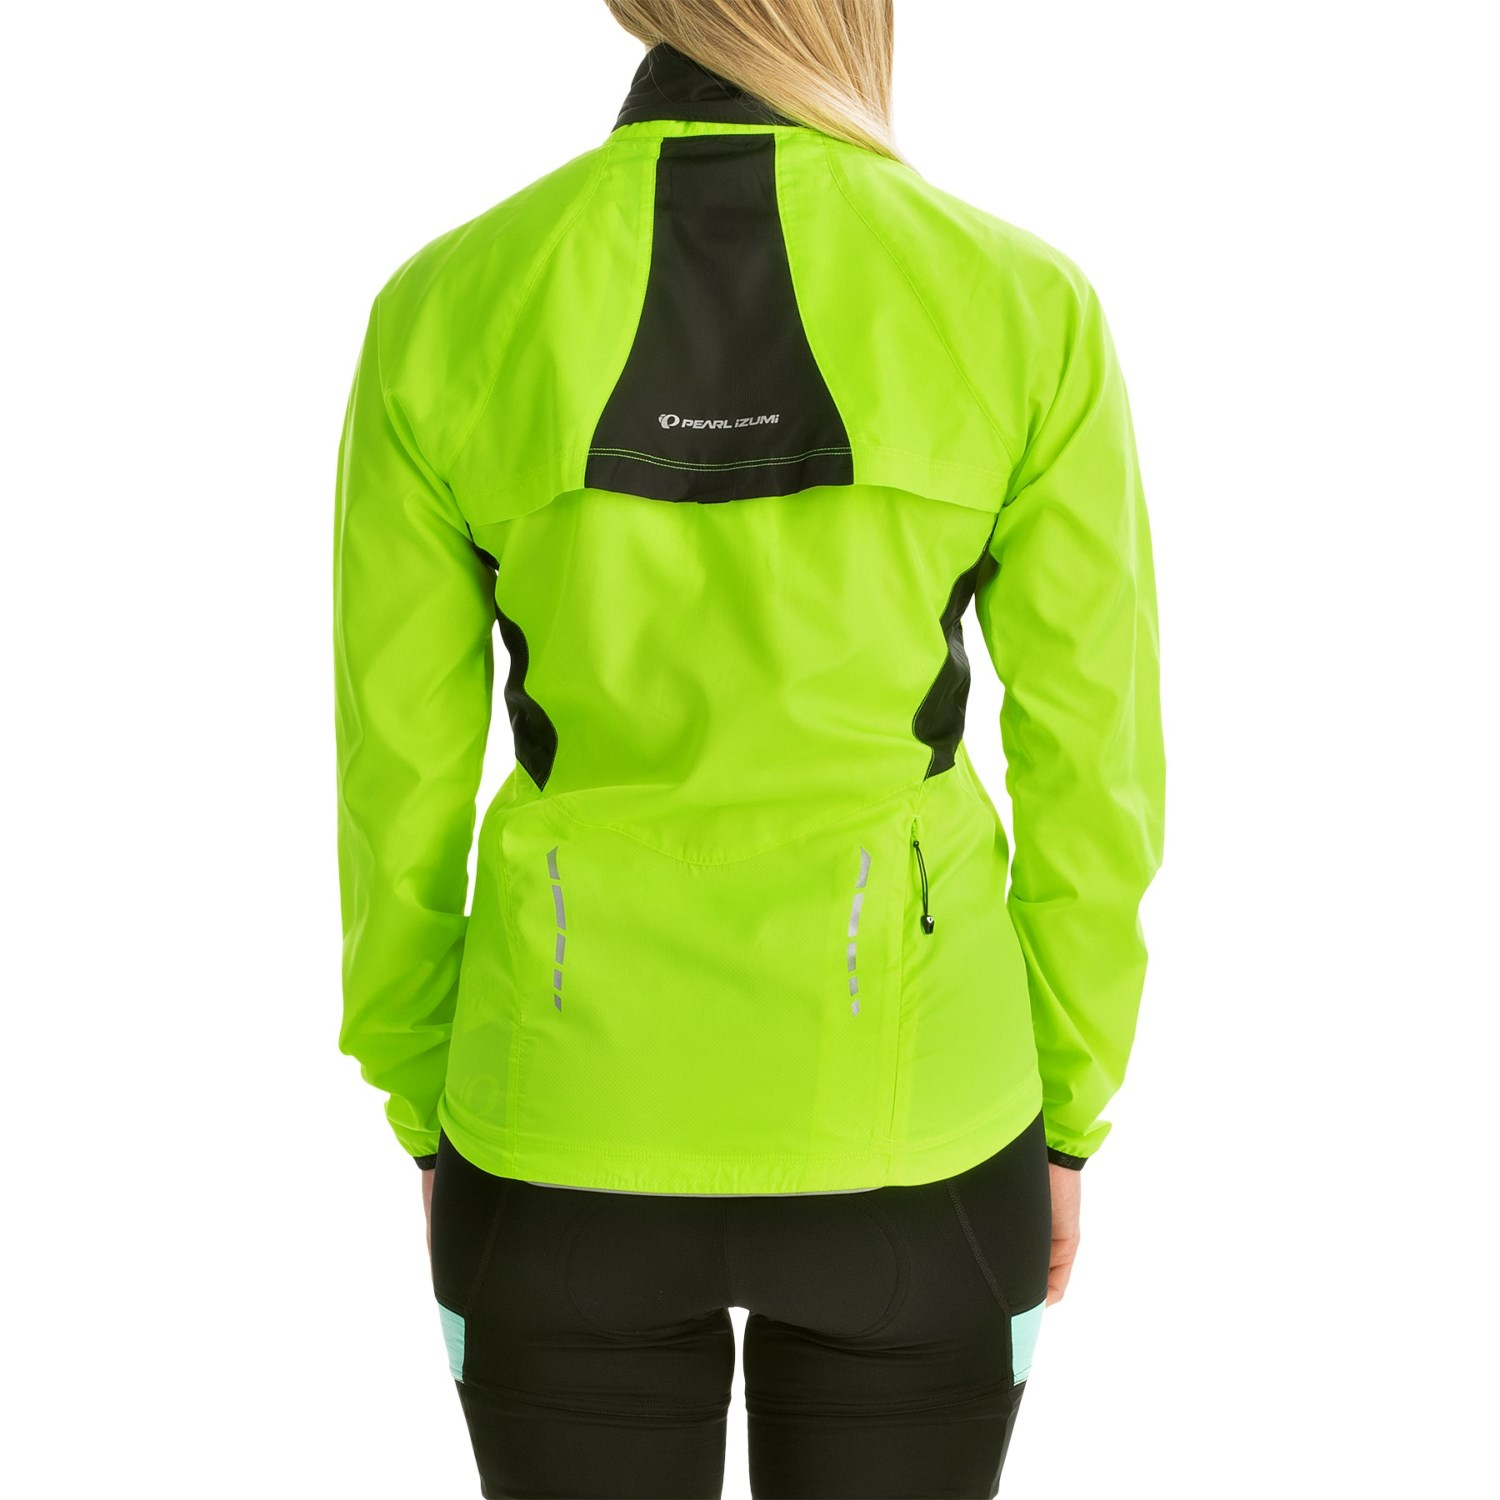 b360105a5 Pearl Izumi ELITE Barrier Convertible Jacket (For Women) - Save 45%